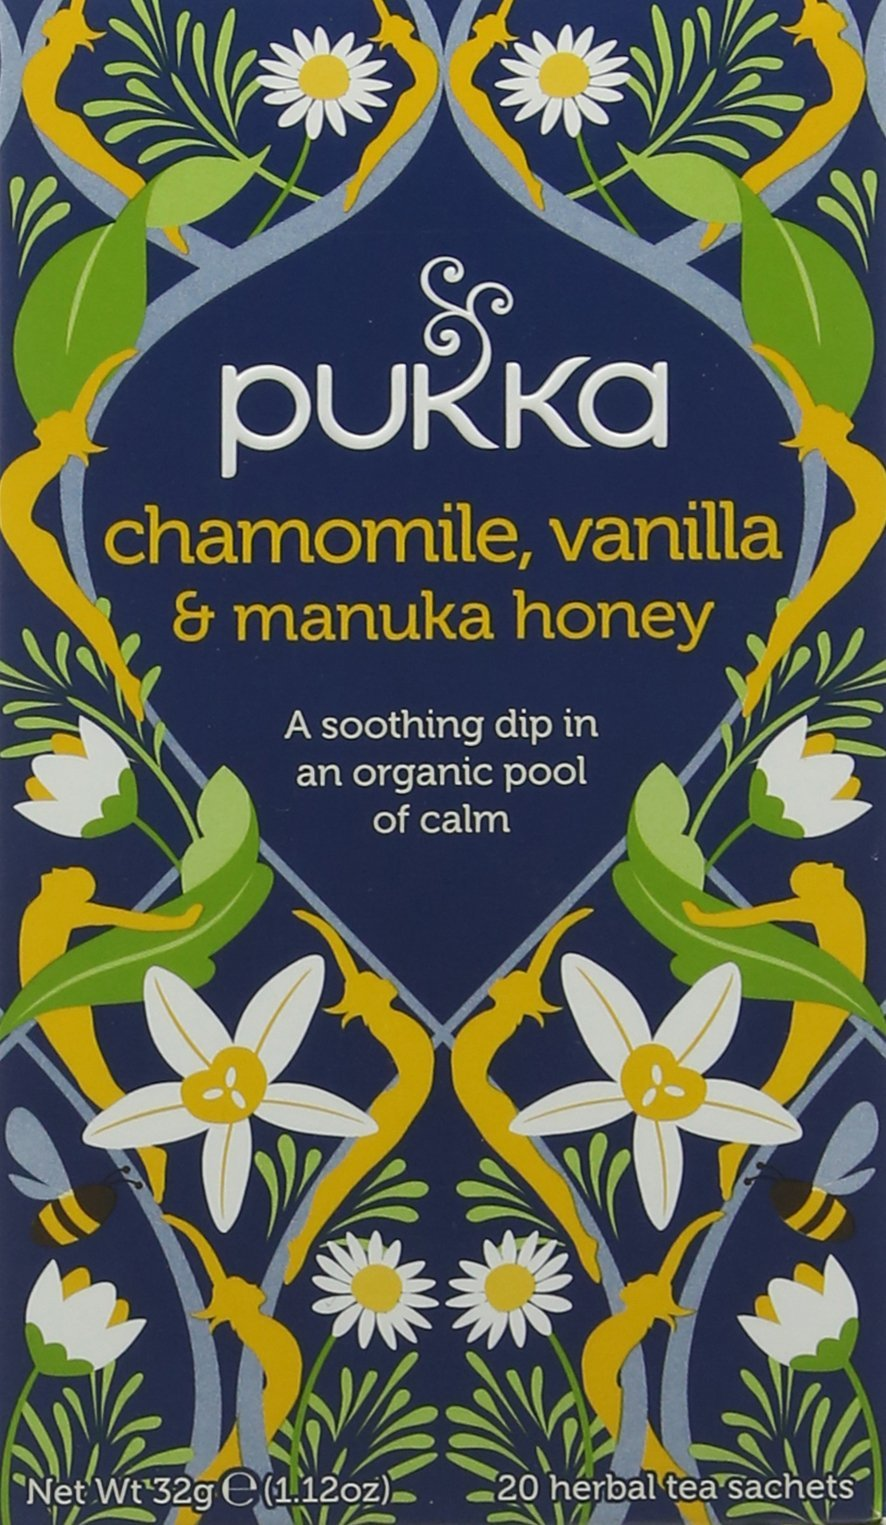 Pukka relax range tea bundle (soil association) (infusions) (4 packs of 20 bags) (80 bags) (a fruity, sweet tea with aromas of camomile, fennel, liquorice, manuka honey, vanilla) (brews in up to 15 min)